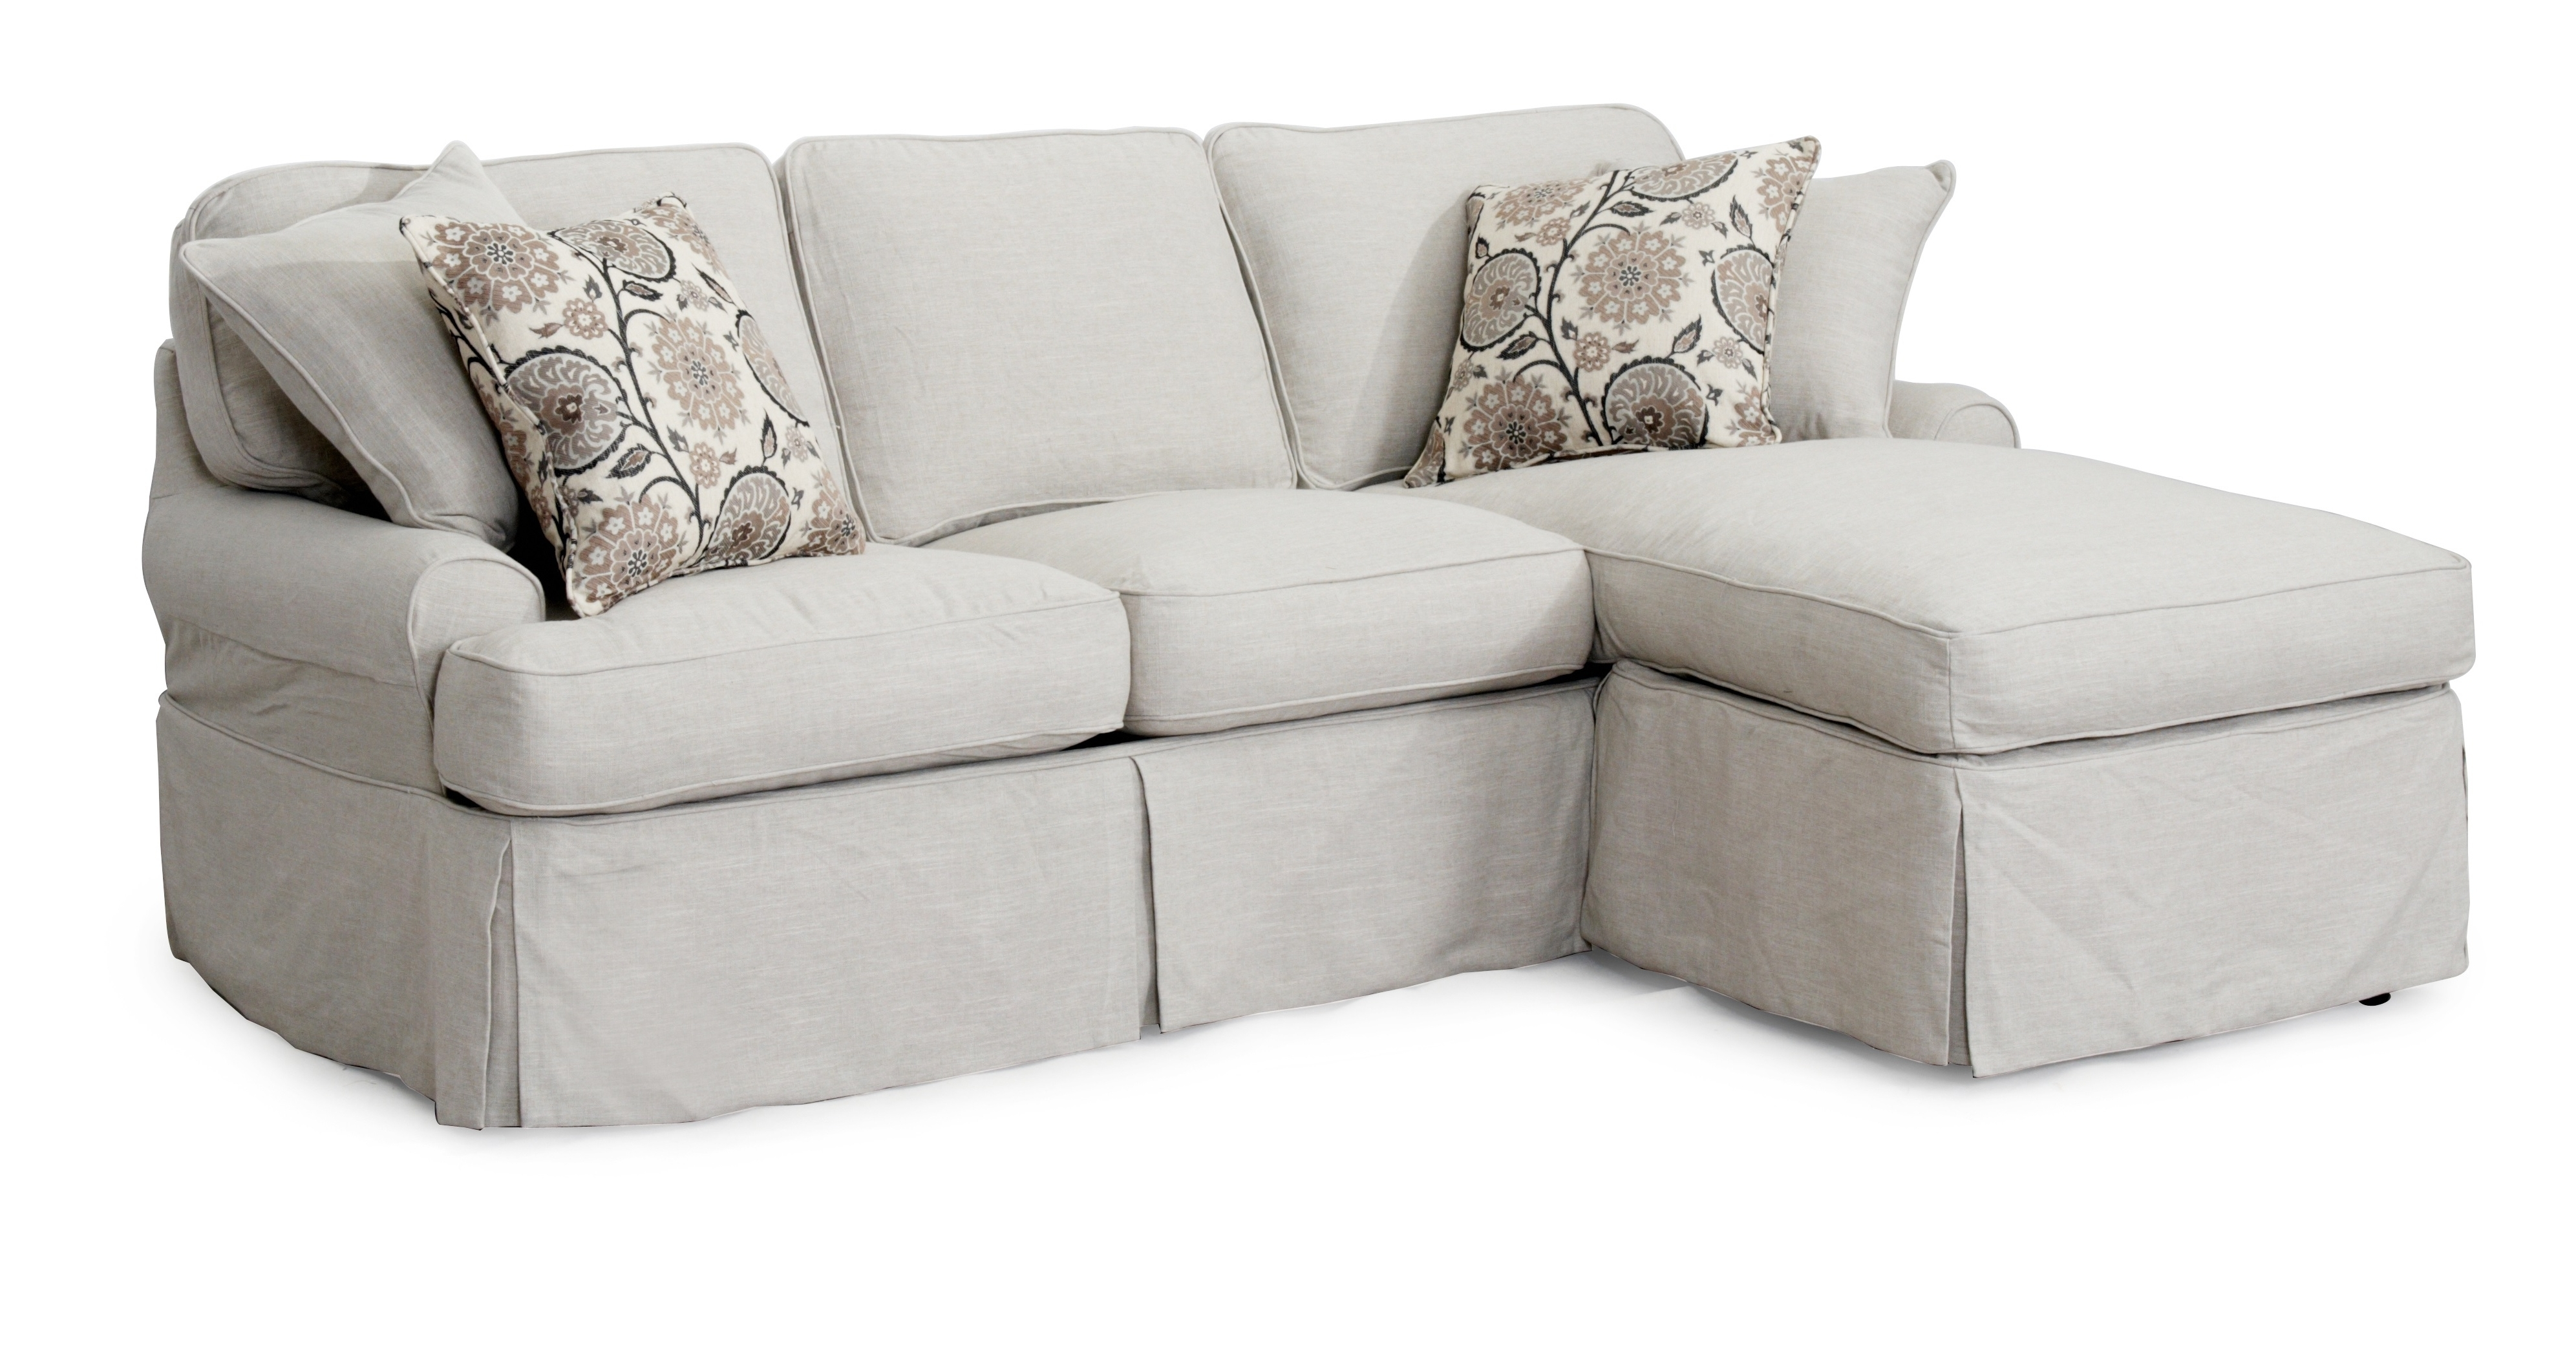 Furniture: Protecting Furniture From Kids With Sofa Arm Covers For Most Current Chaise Covers (View 11 of 15)